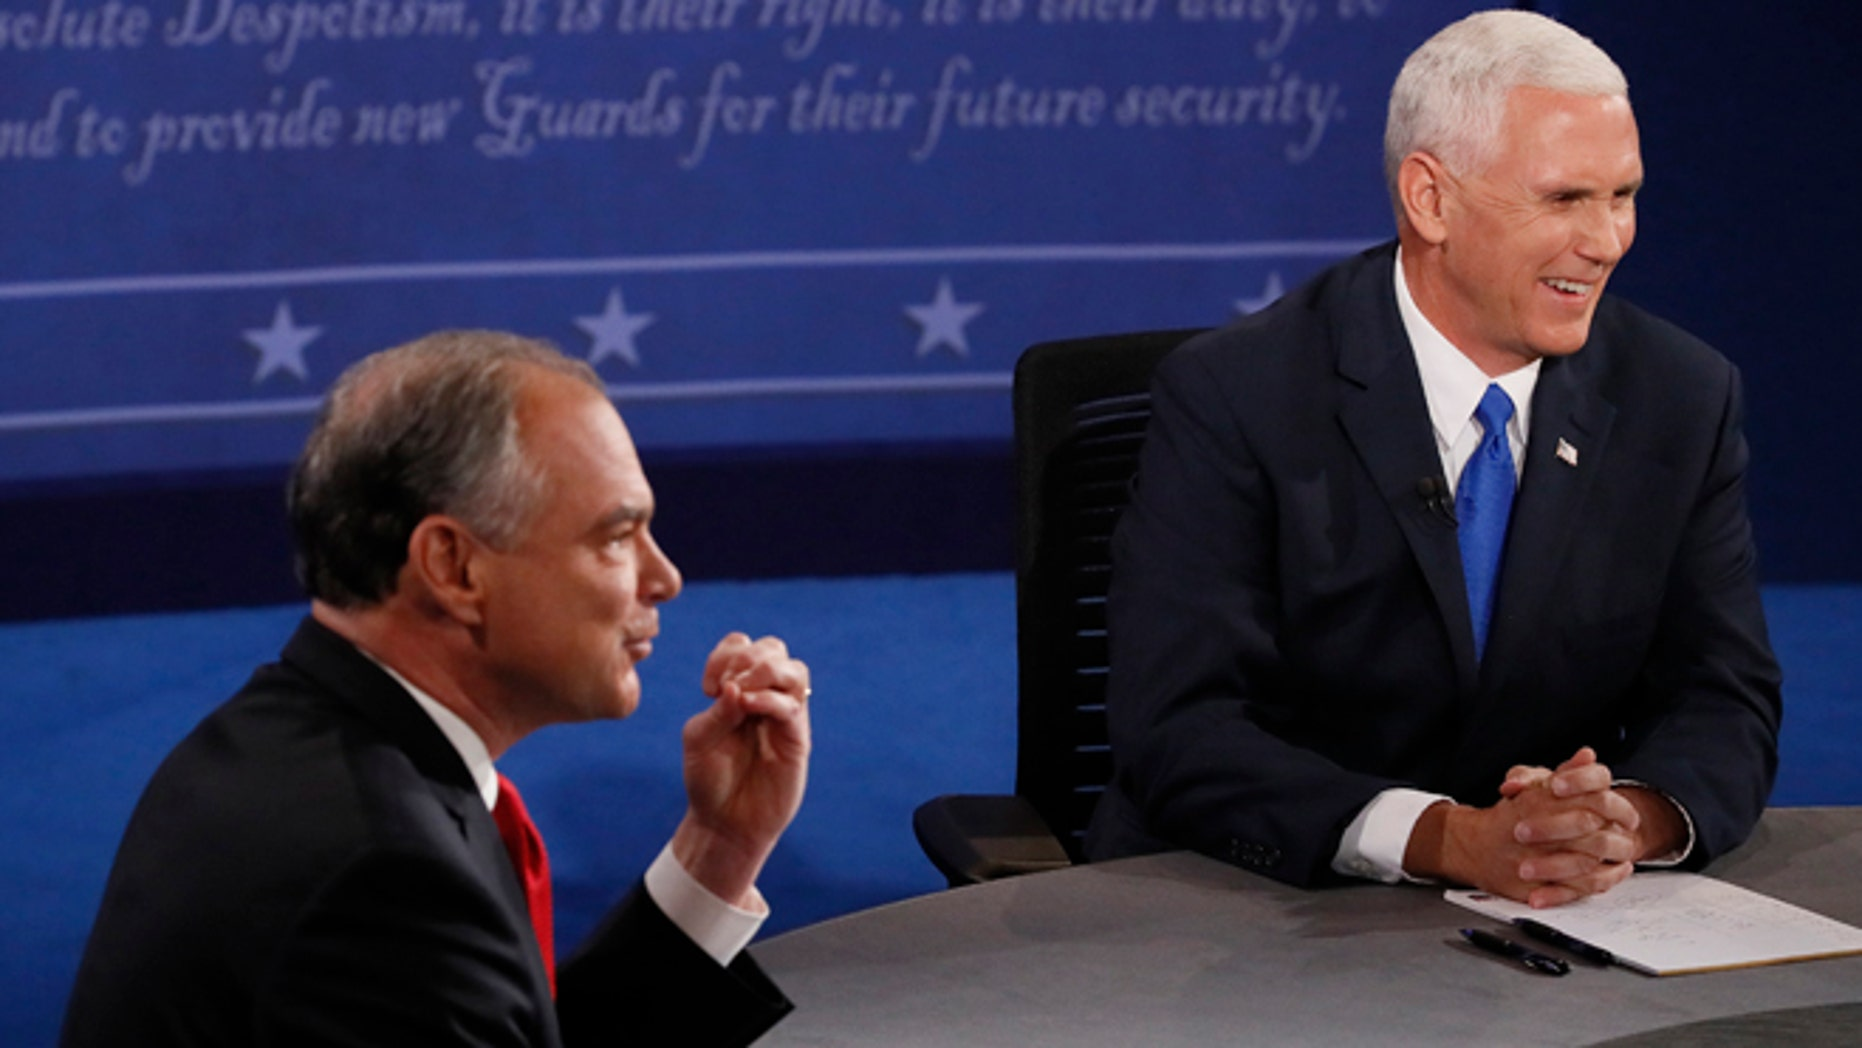 Republican vice-presidential nominee Gov. Mike Pence, right, and Democratic vice-presidential nominee Sen. Tim Kaine debate during the vice-presidential debate at Longwood University in Farmville, Va., Tuesday, Oct. 4, 2016. (Andrew Gombert/Pool via AP)